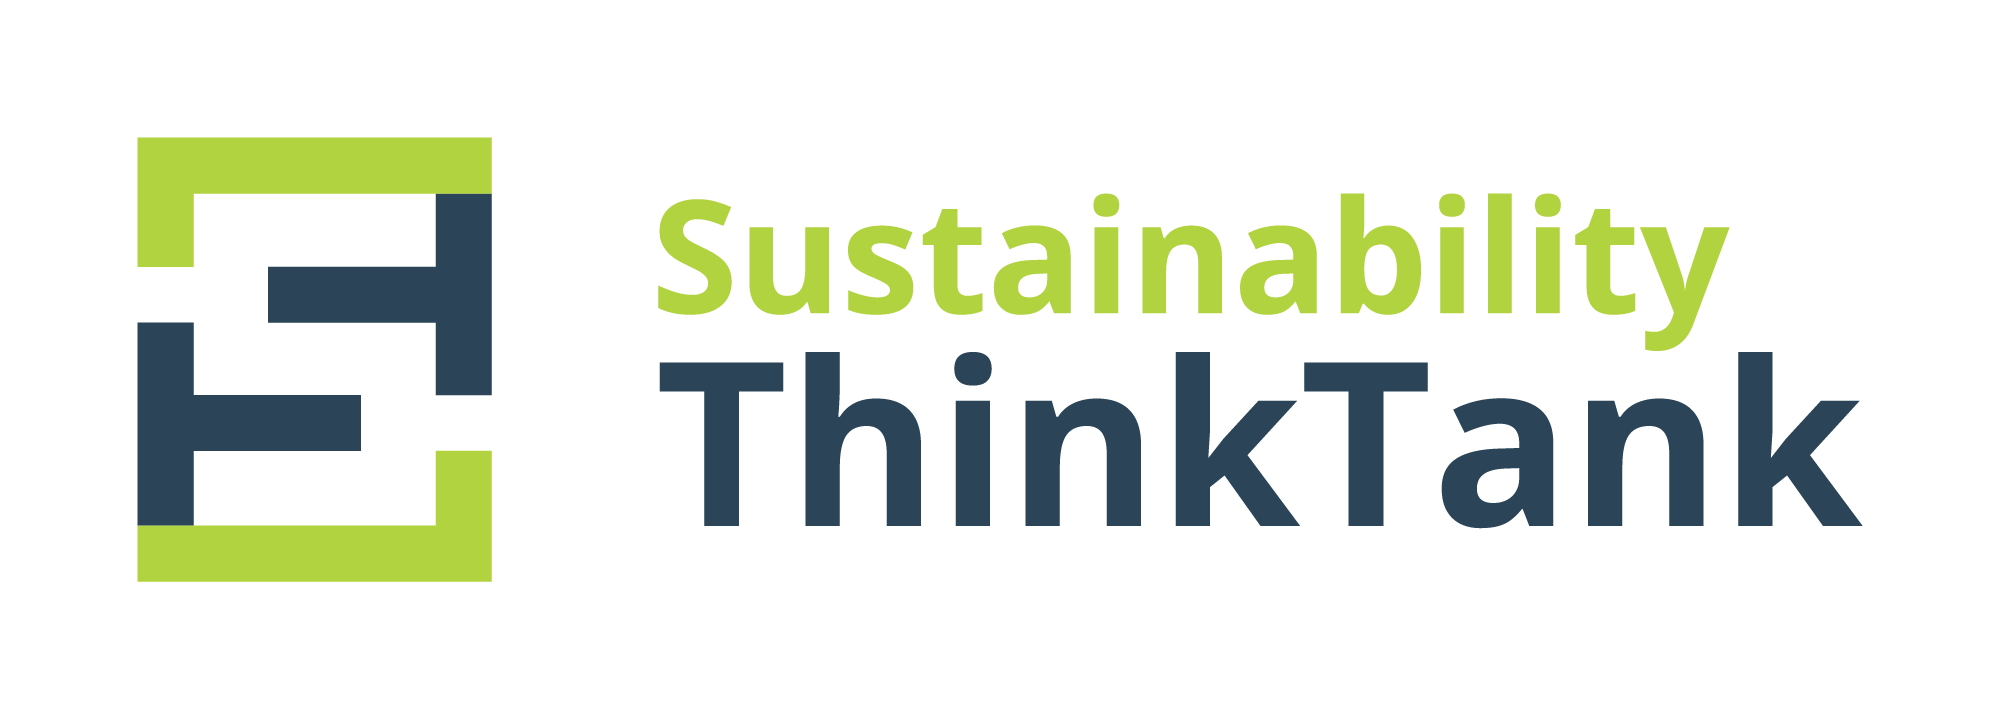 Sustainability ThinkTank